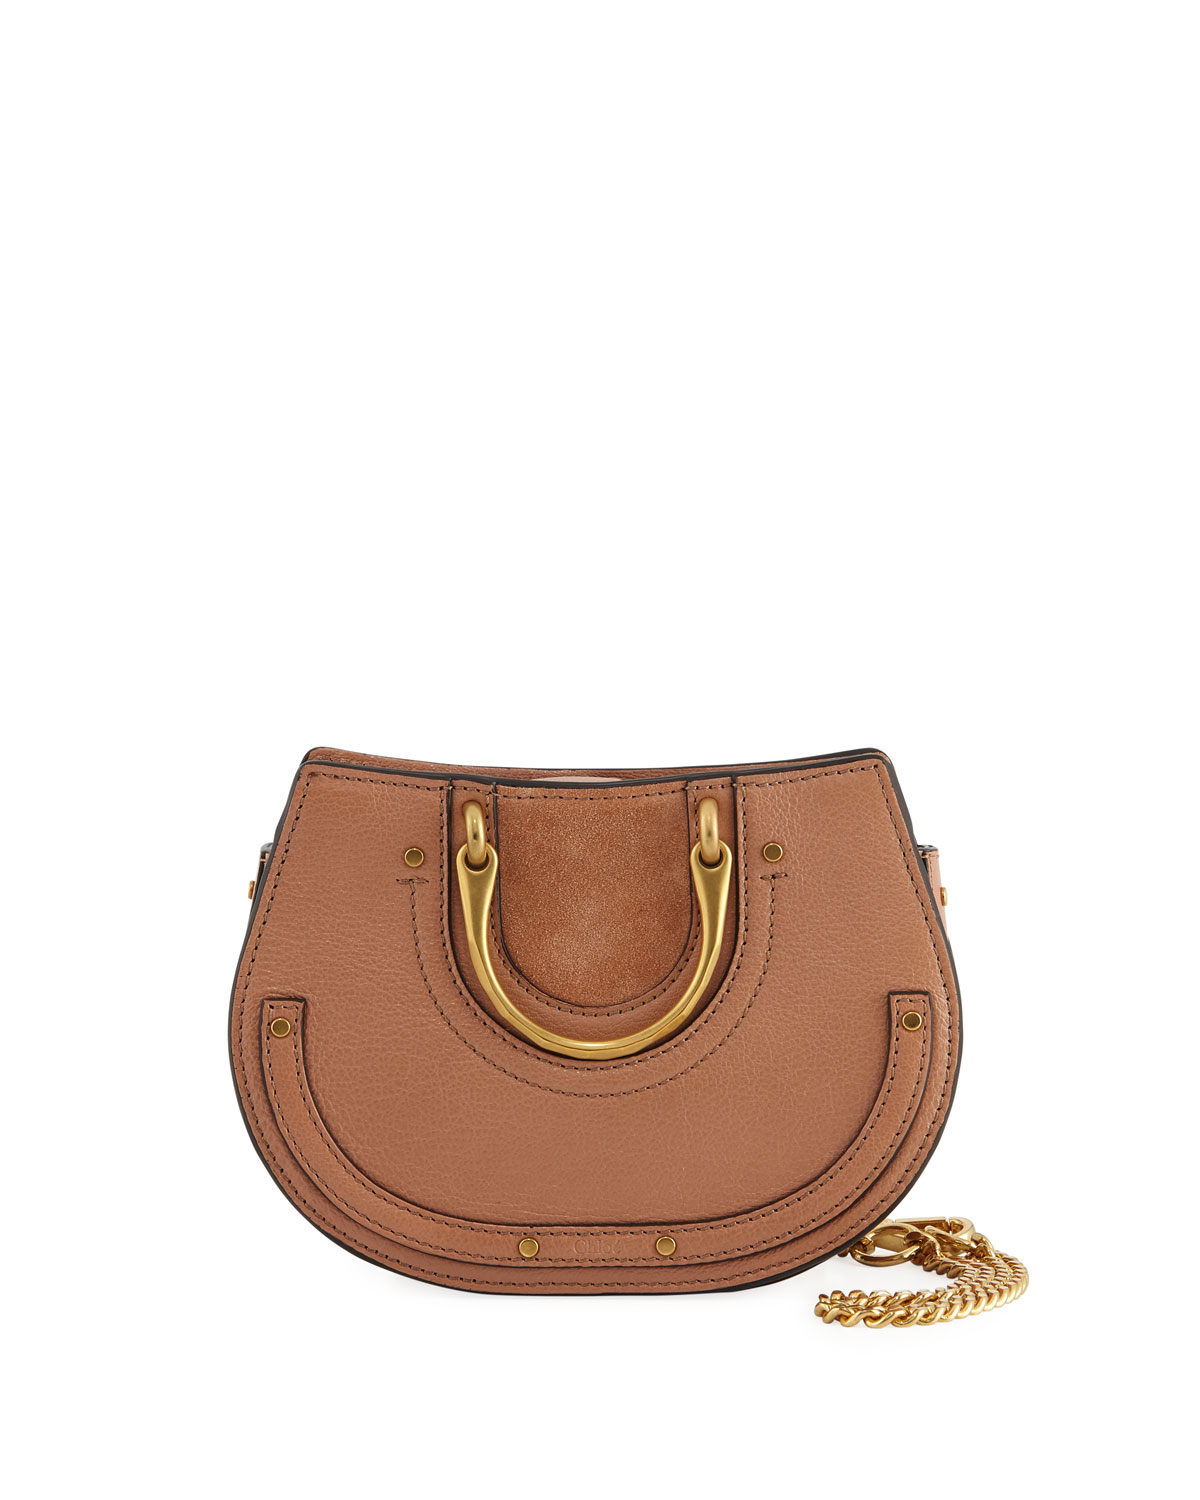 7913c19f28 Pixie Mini Round Shoulder Bag